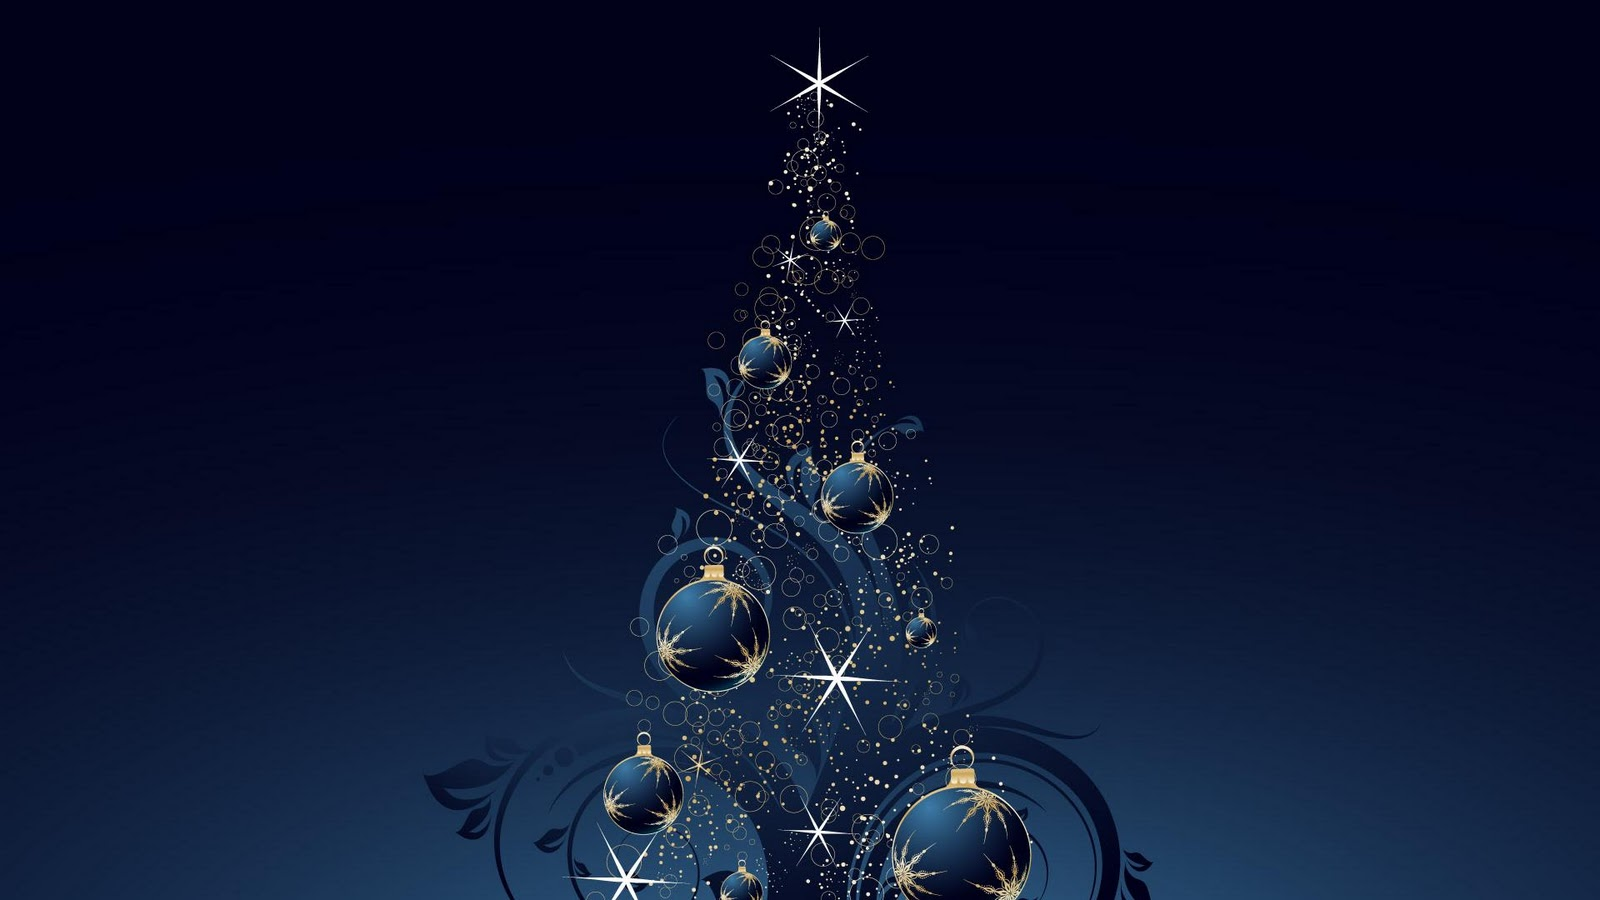 new year and christmas wallpapers | sweet images